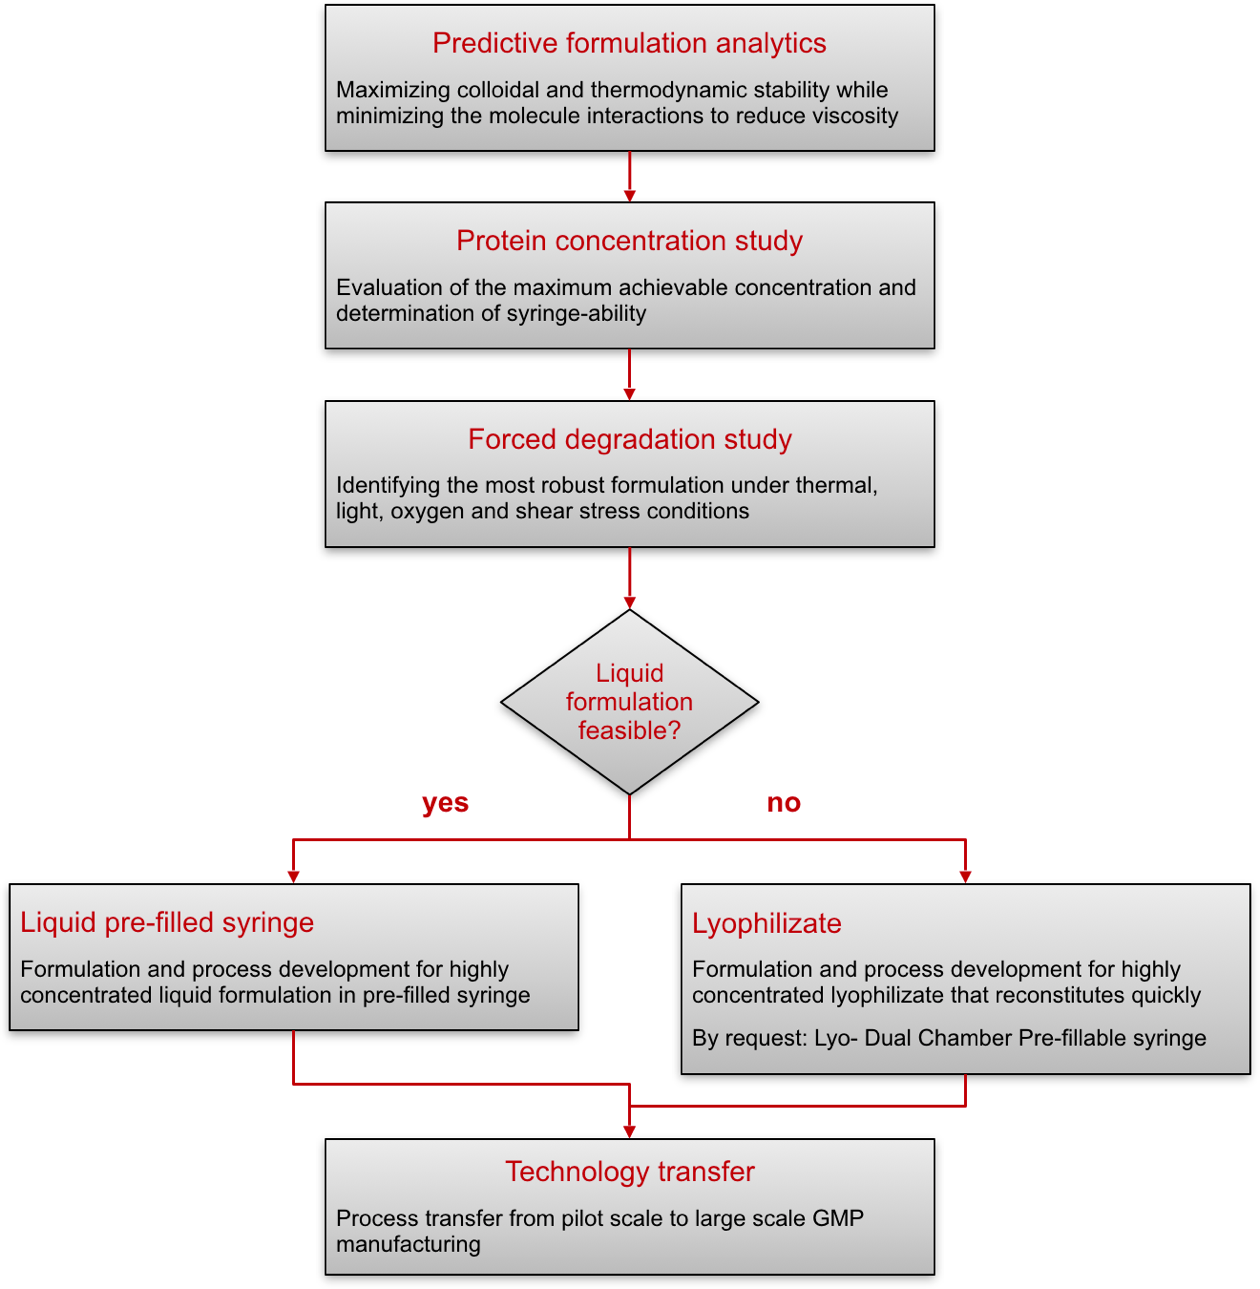 High protein concentration formulations project pharmaceutics flowchart nvjuhfo Choice Image